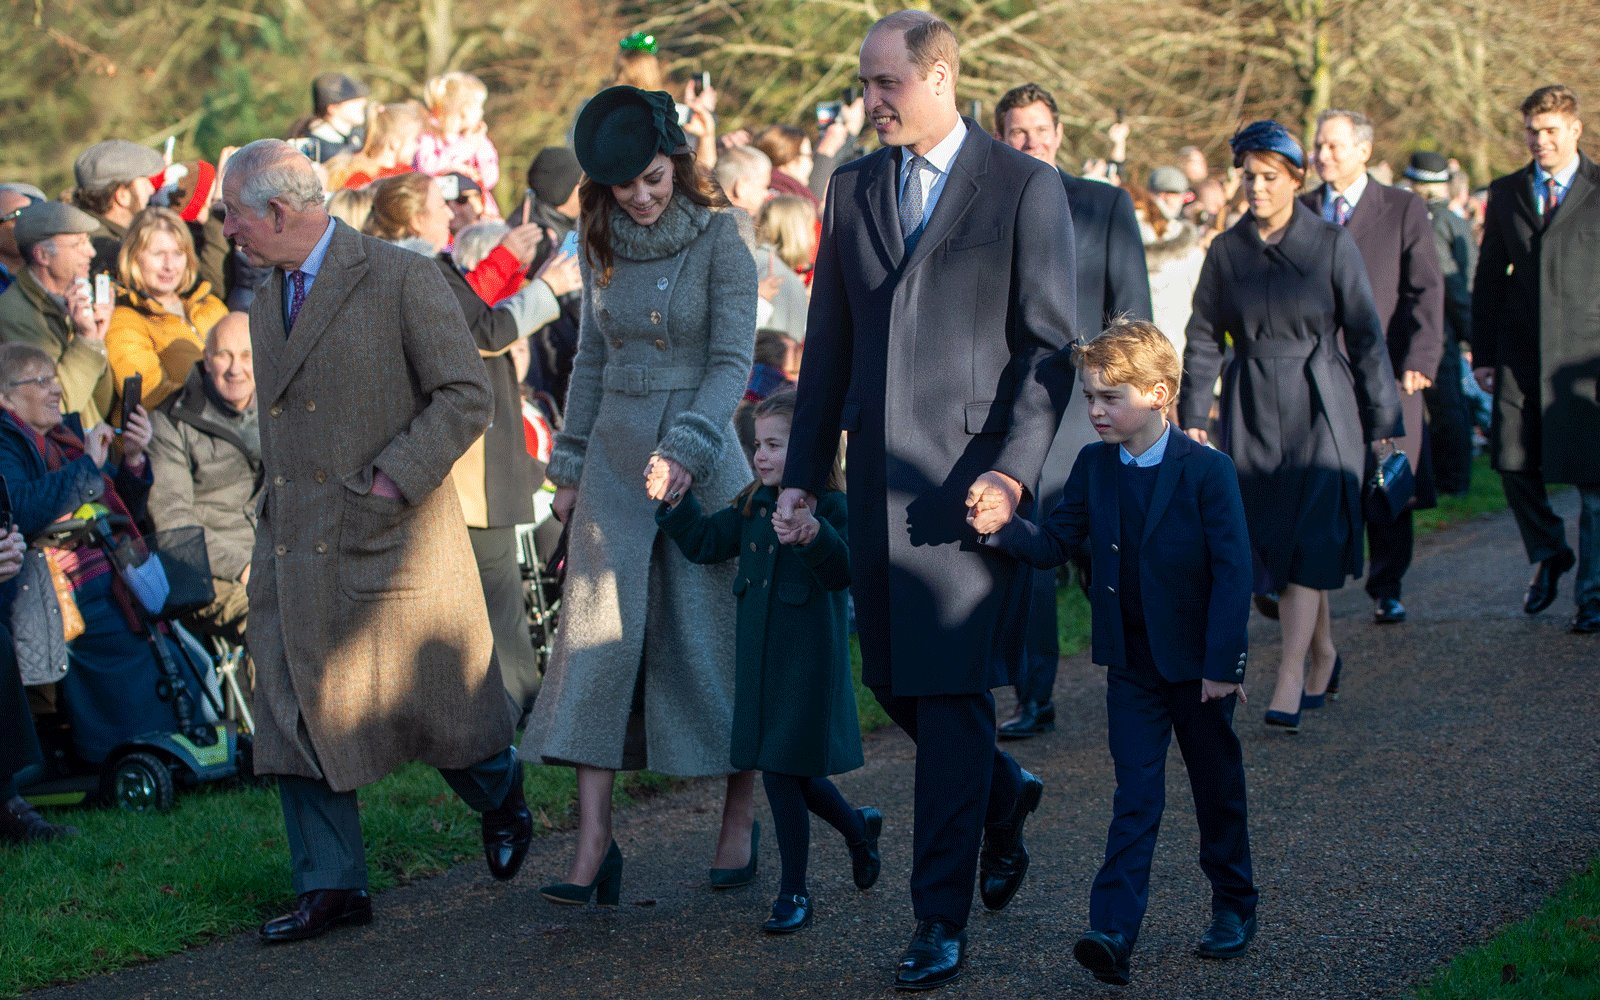 Prince Charles, Kate Middleton, Prince William, Prince George, Princess Charlotte